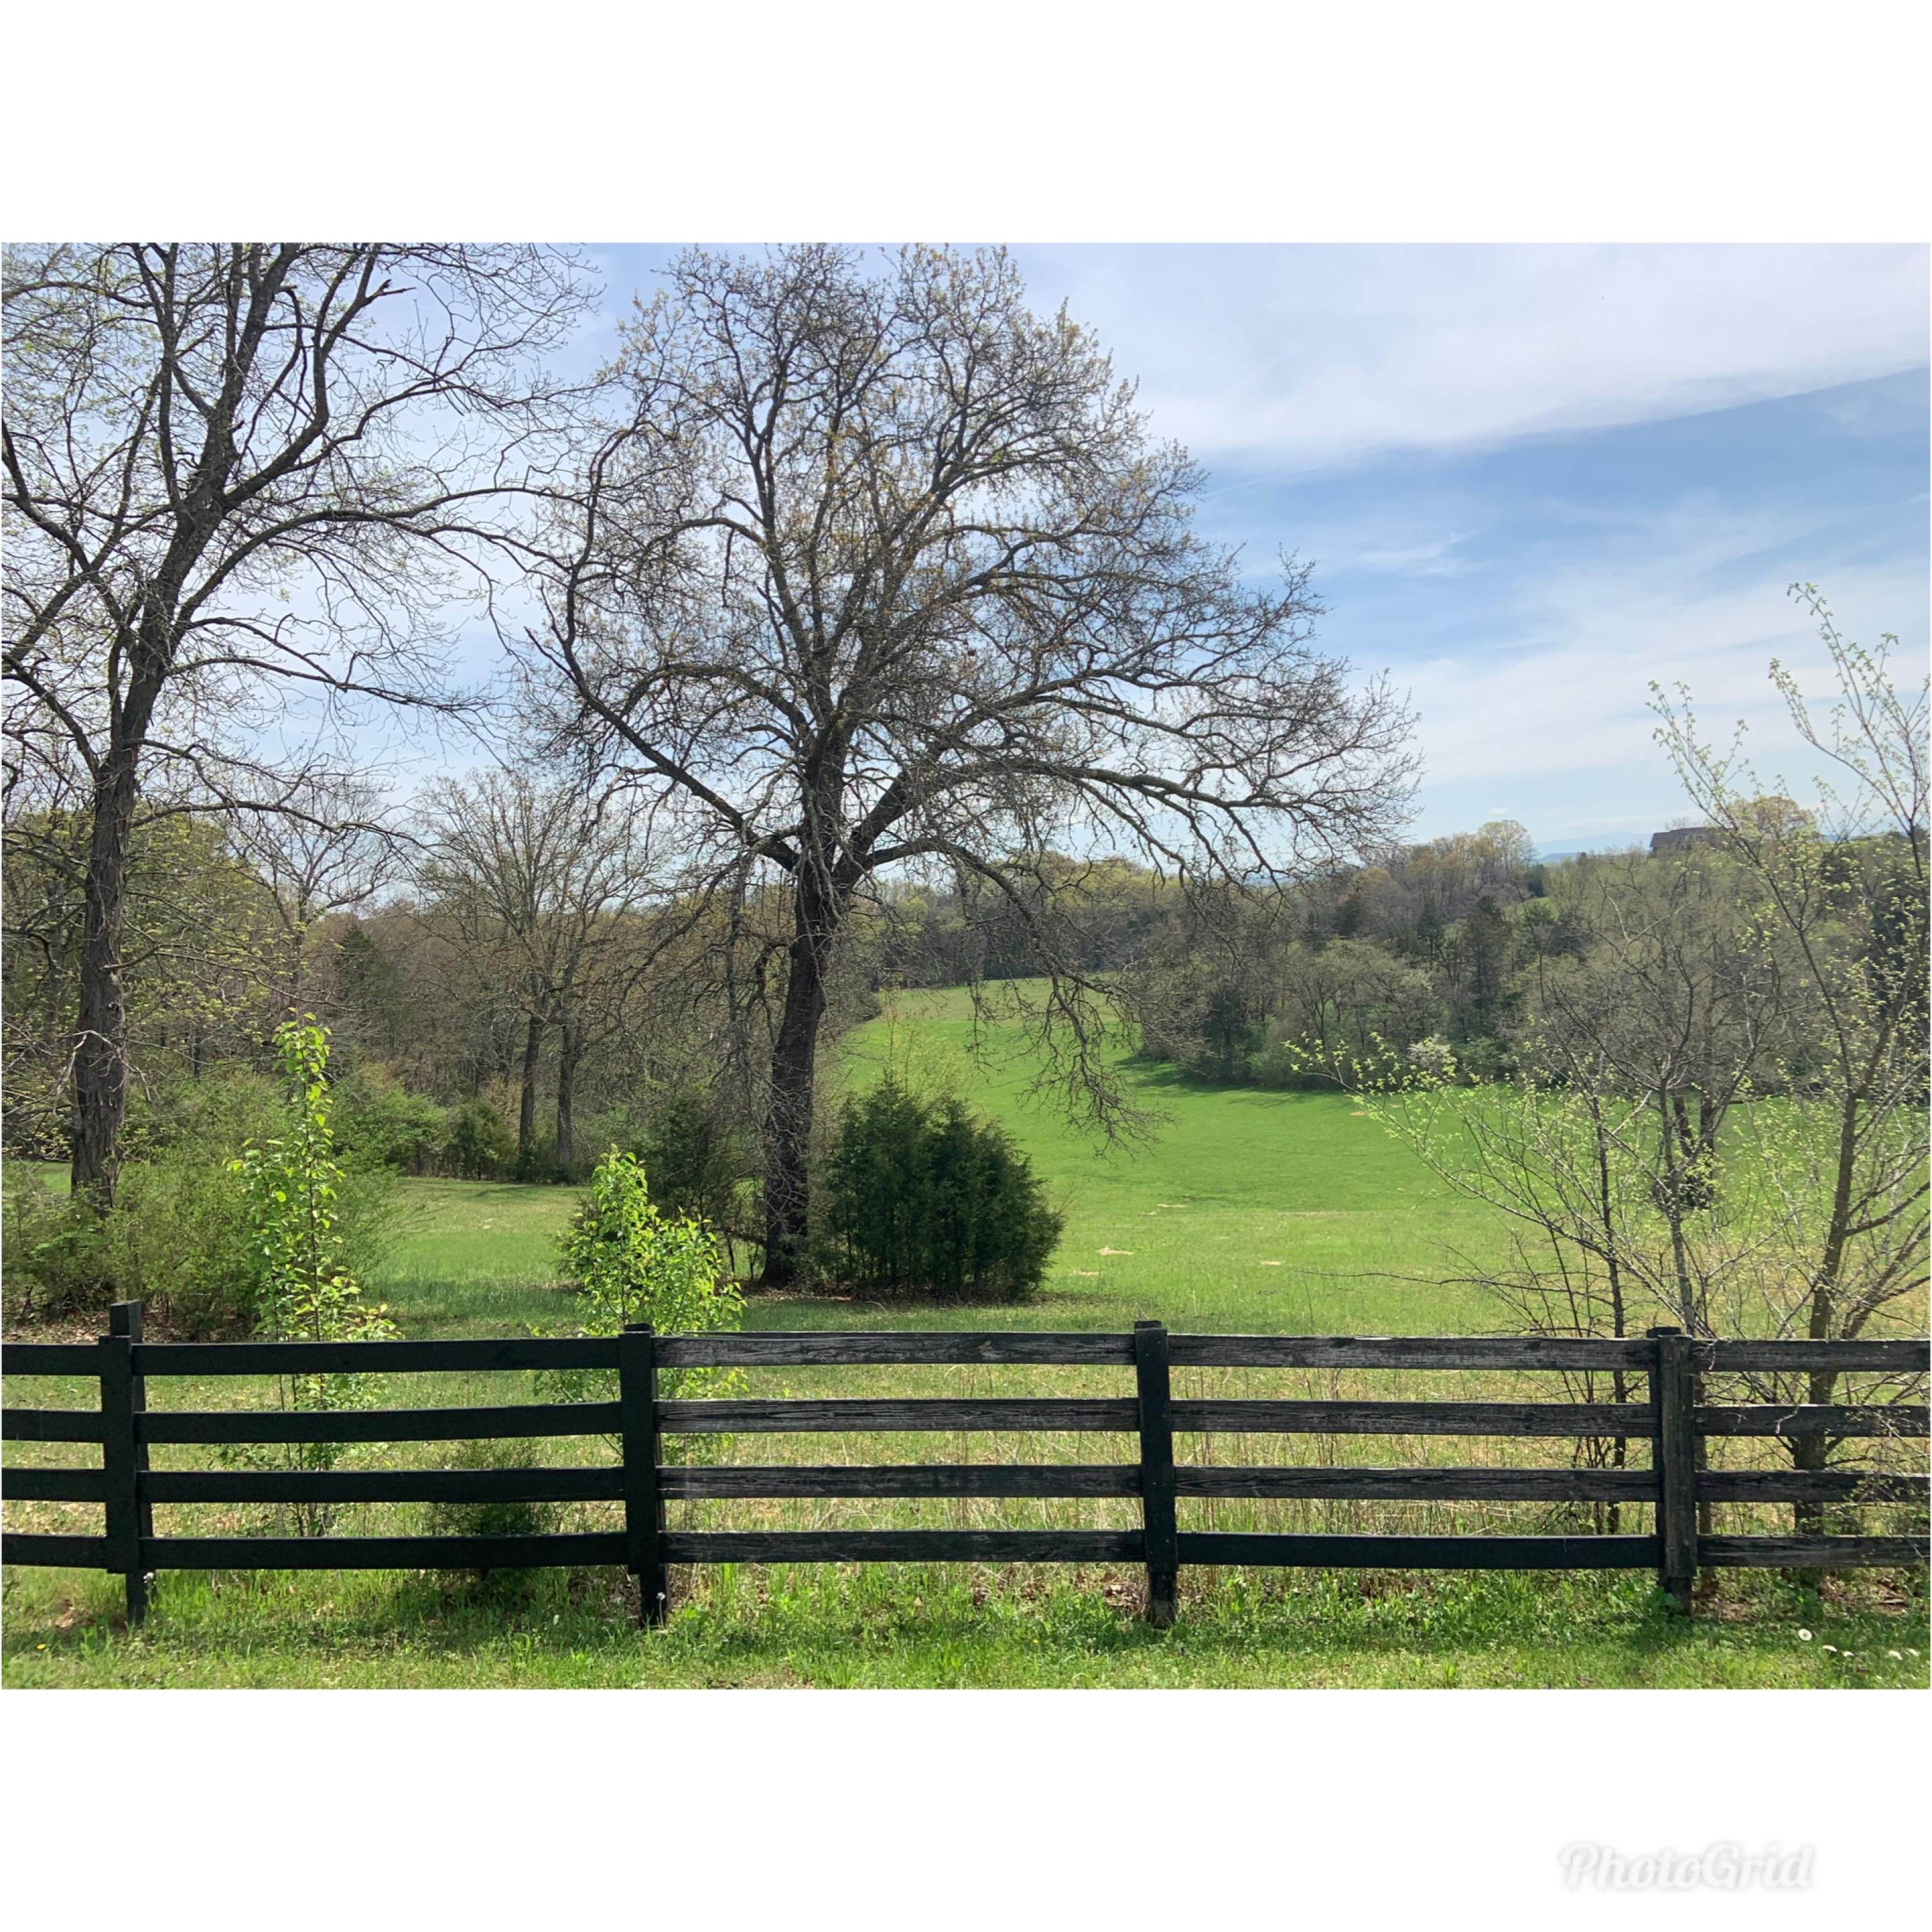 Richland Rd, Blaine, Tennessee 37709, ,Lots & Acreage,For Sale,Richland,1067545